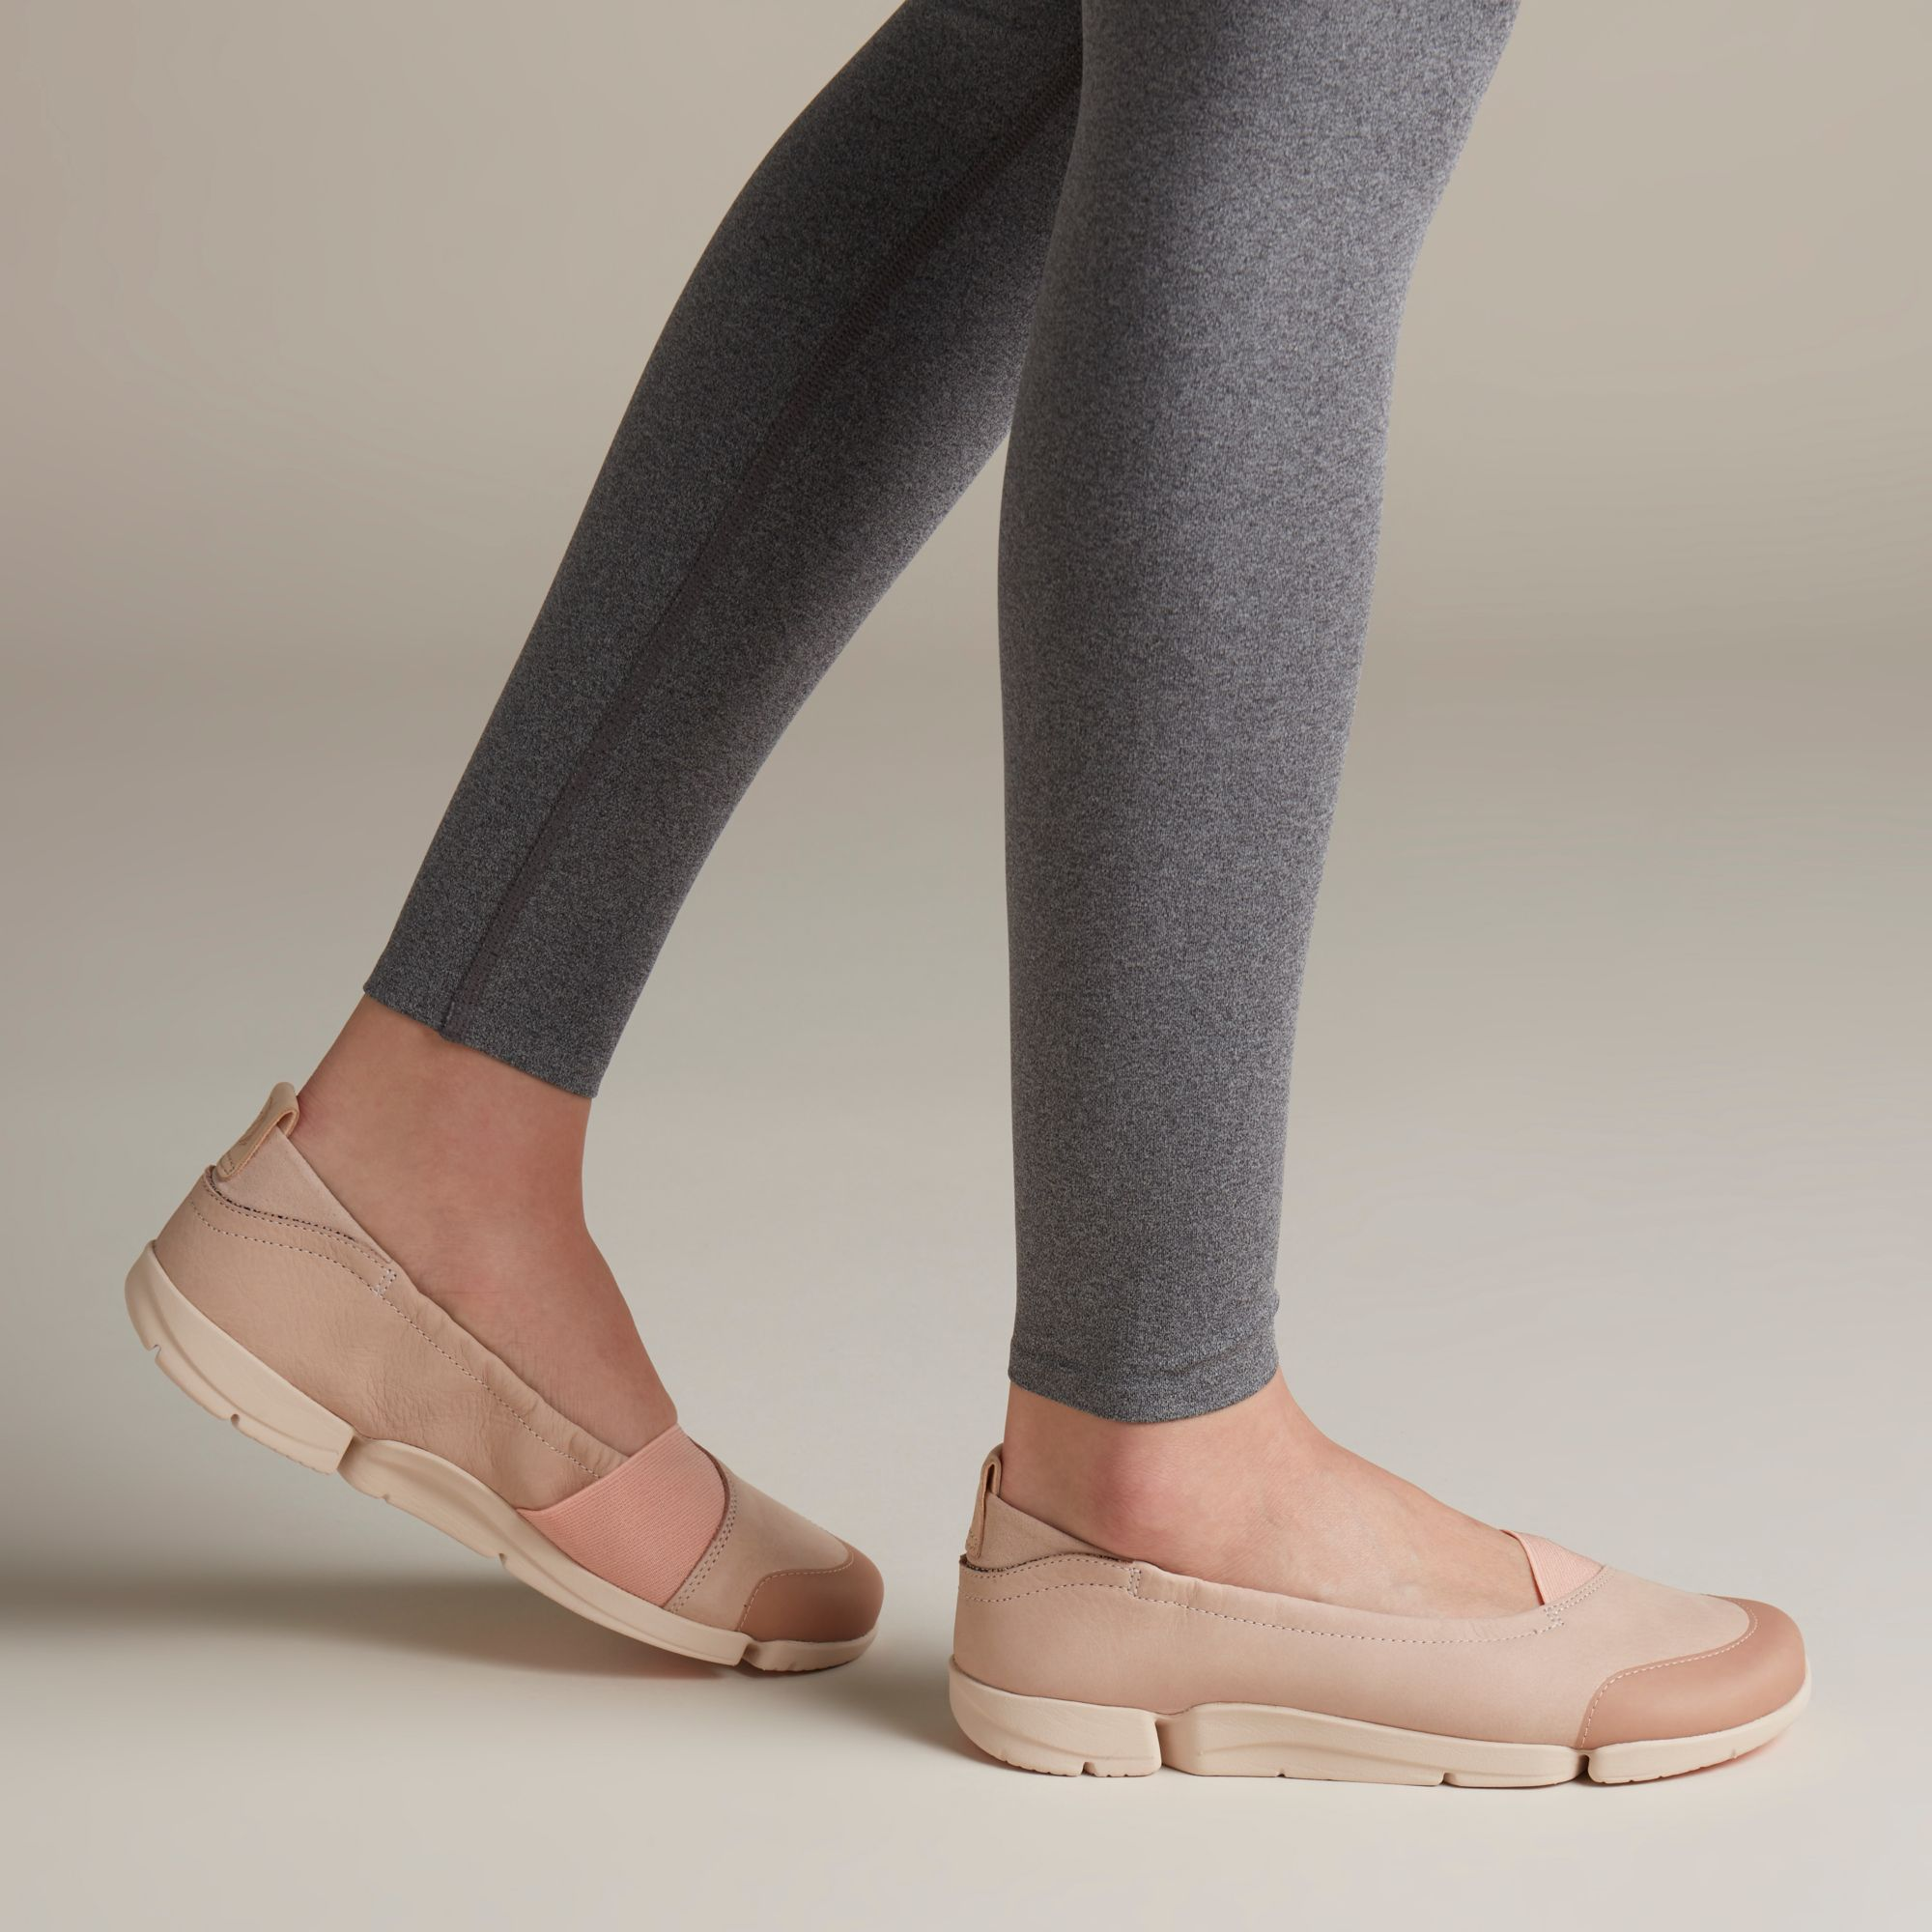 CLARKS SUMMER CLEARANCE NOW UP TO 70% OFF! PRICES AS LOW AS $29.99!